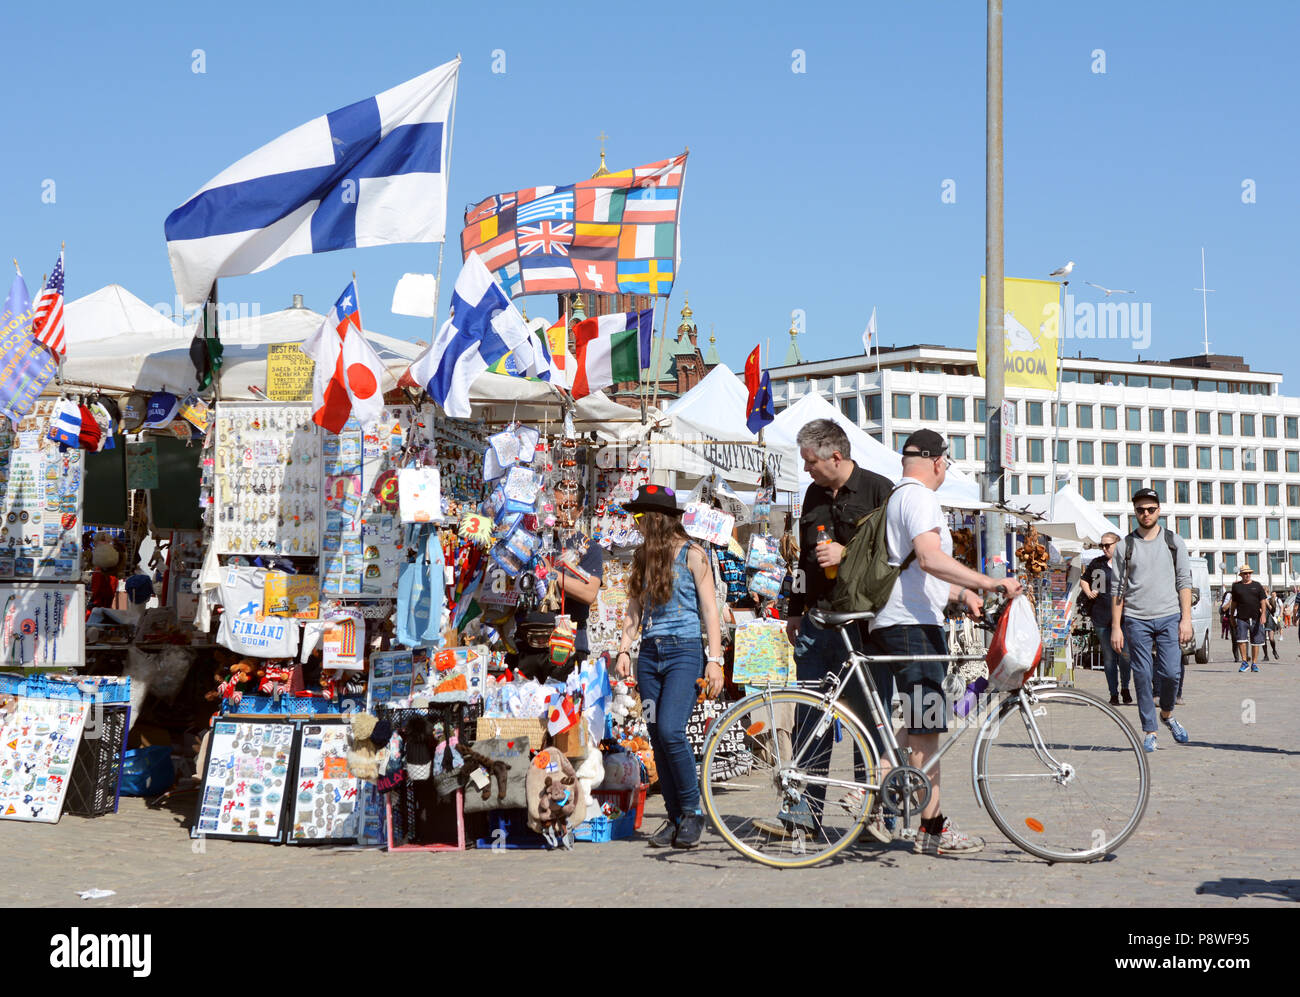 HELSINKI, FINLAND - May 14, 2018: Tourists peruse a stall laden with souvenirs and flags in Market Square, Helsinki - Stock Image